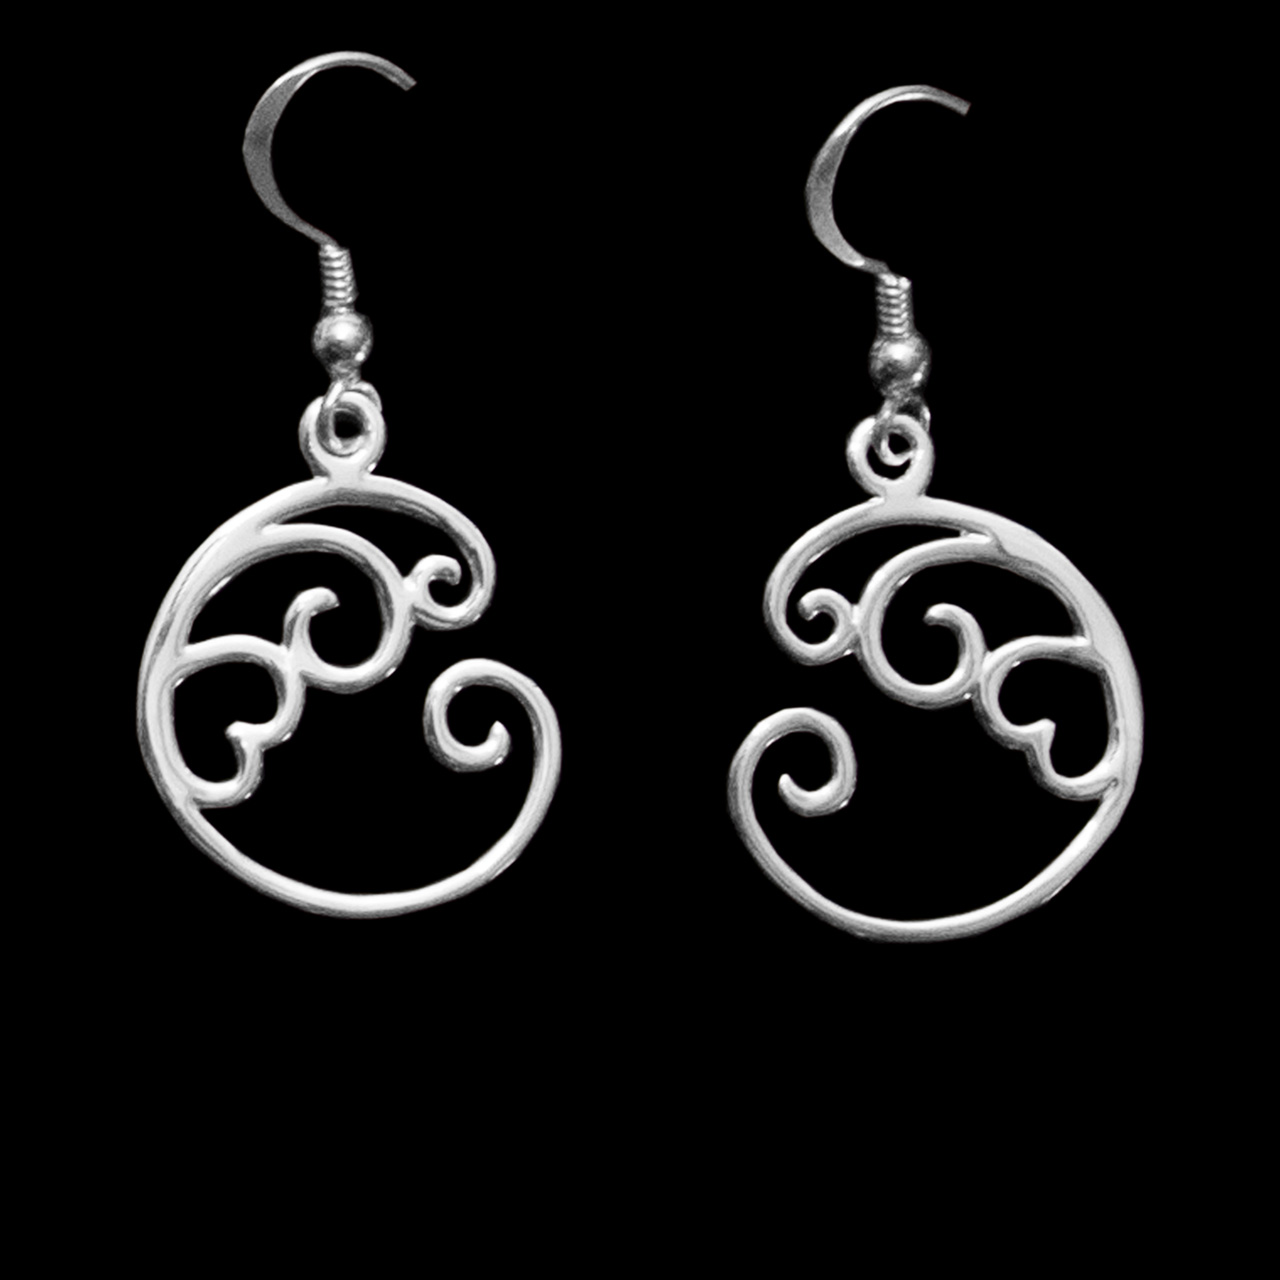 sterling silver wave design earrings with a heart center